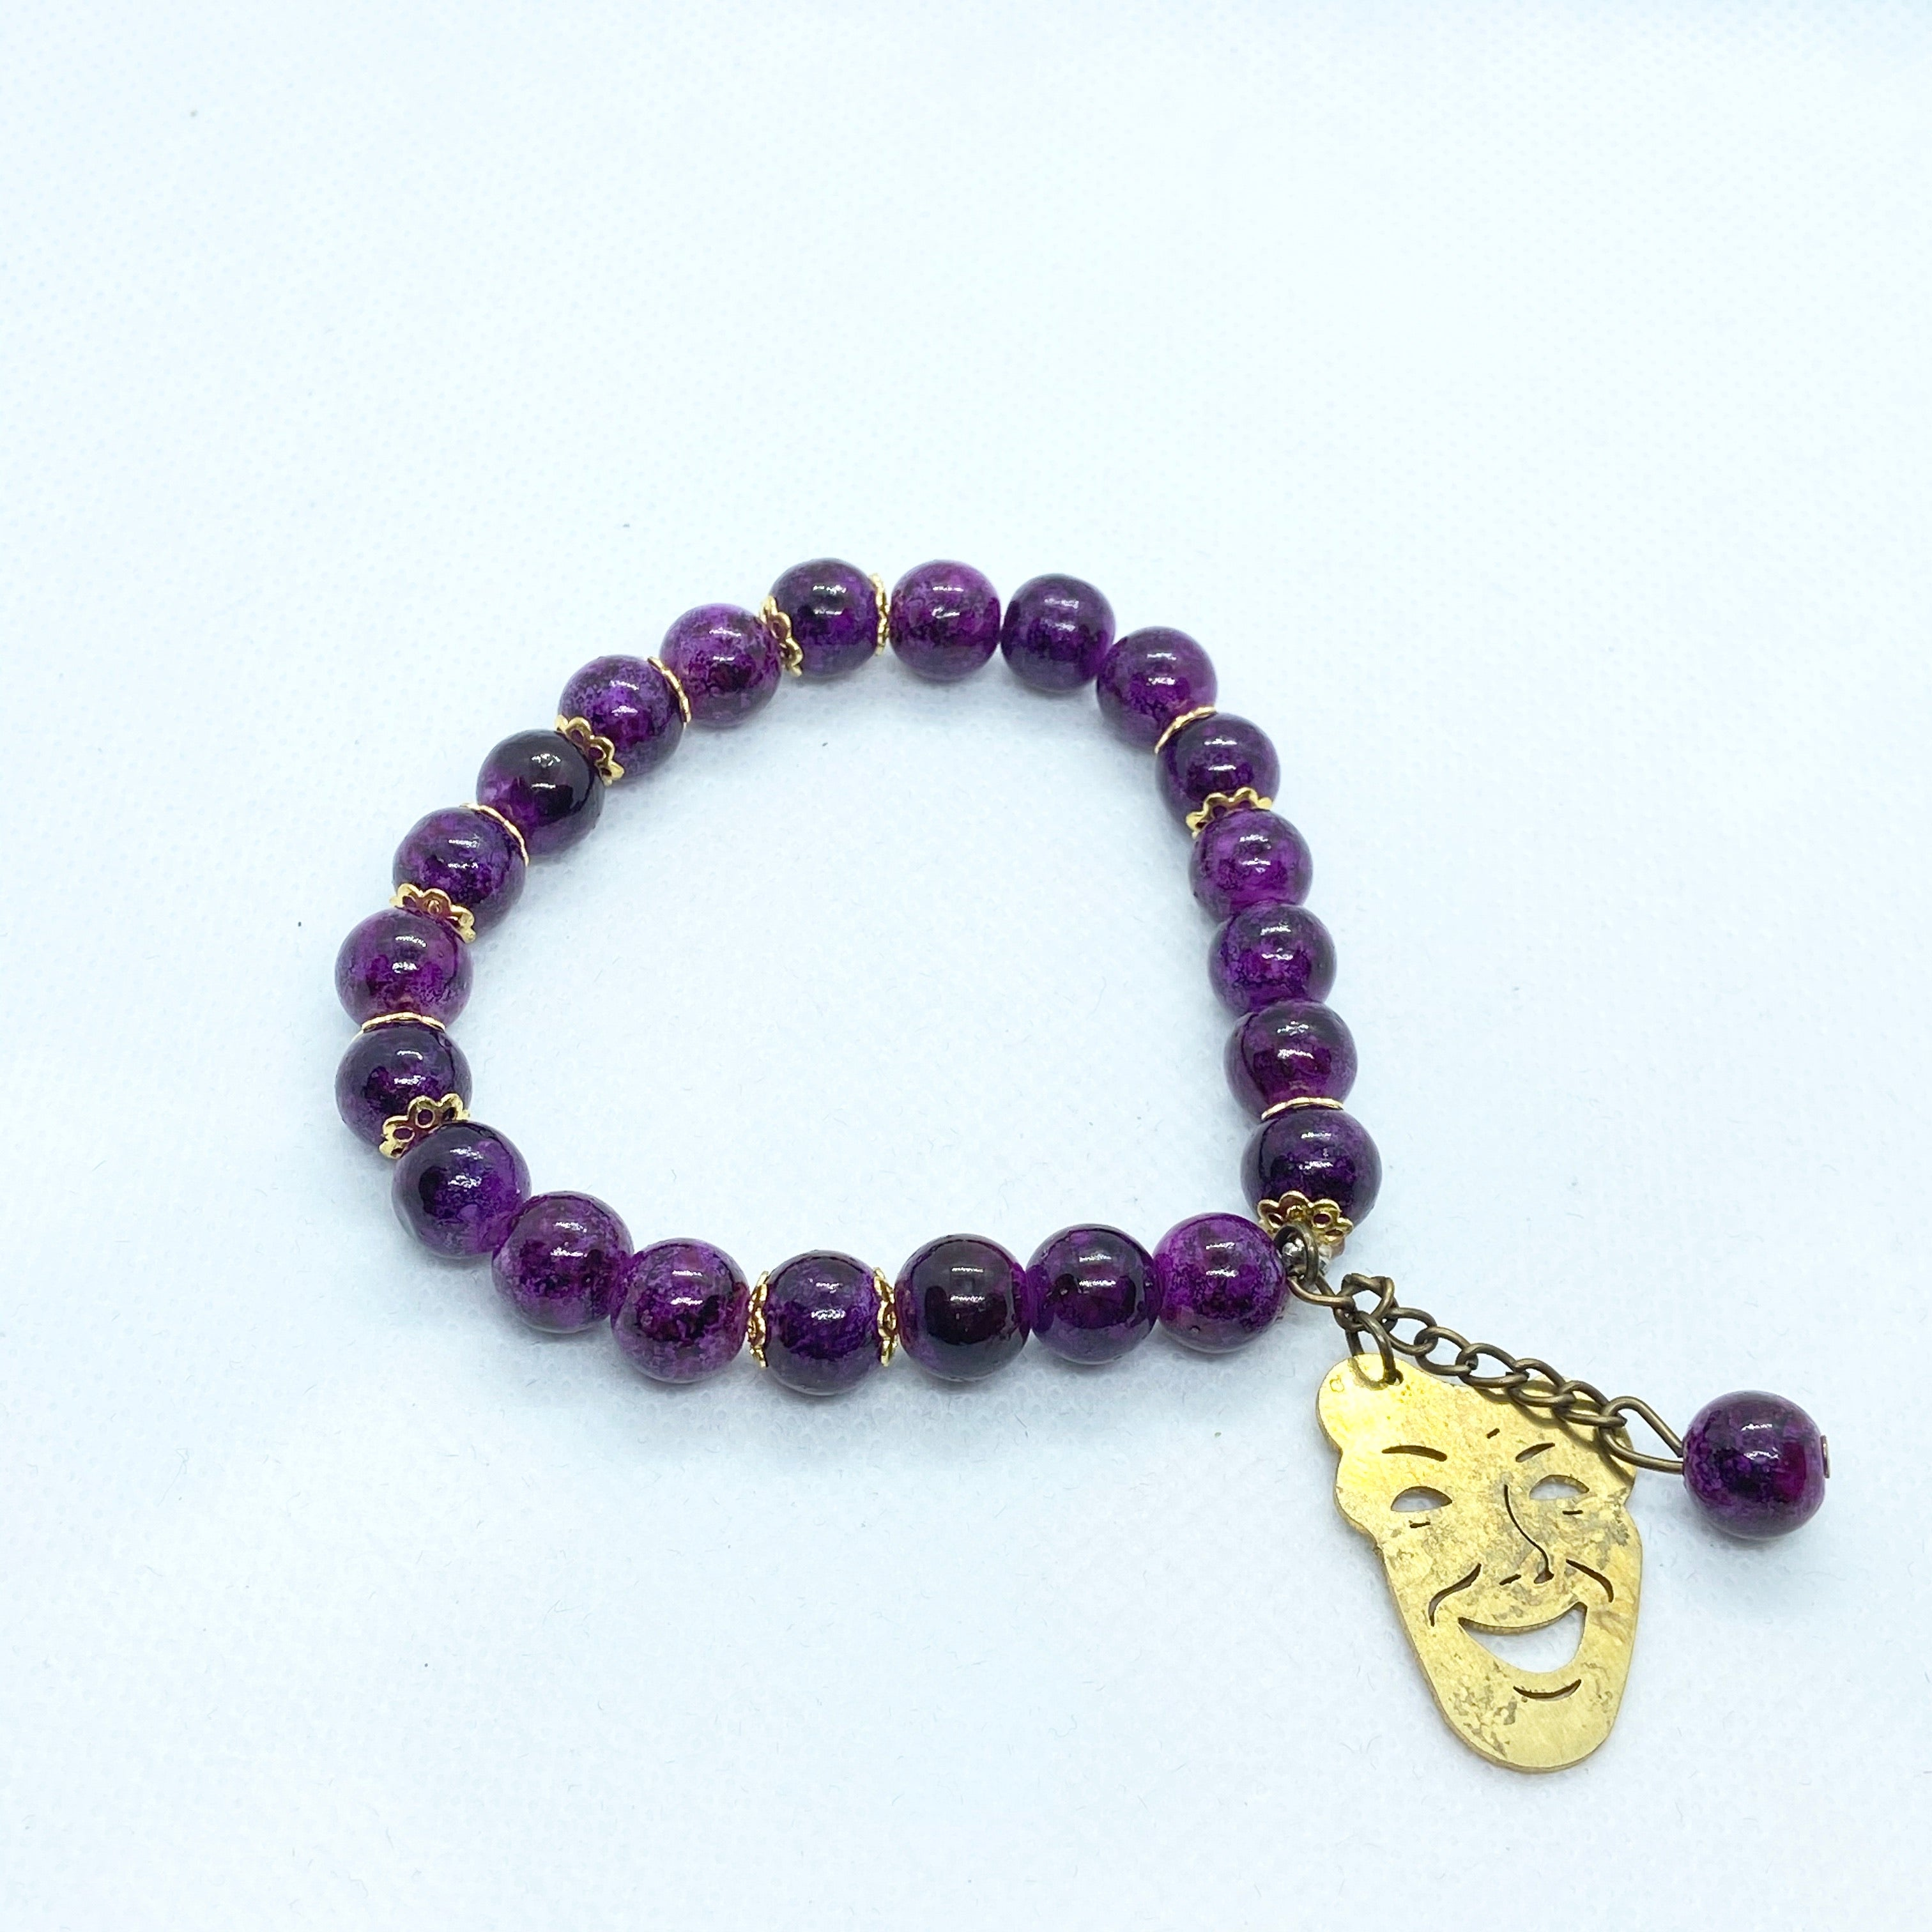 Mask Bracelet with Beads